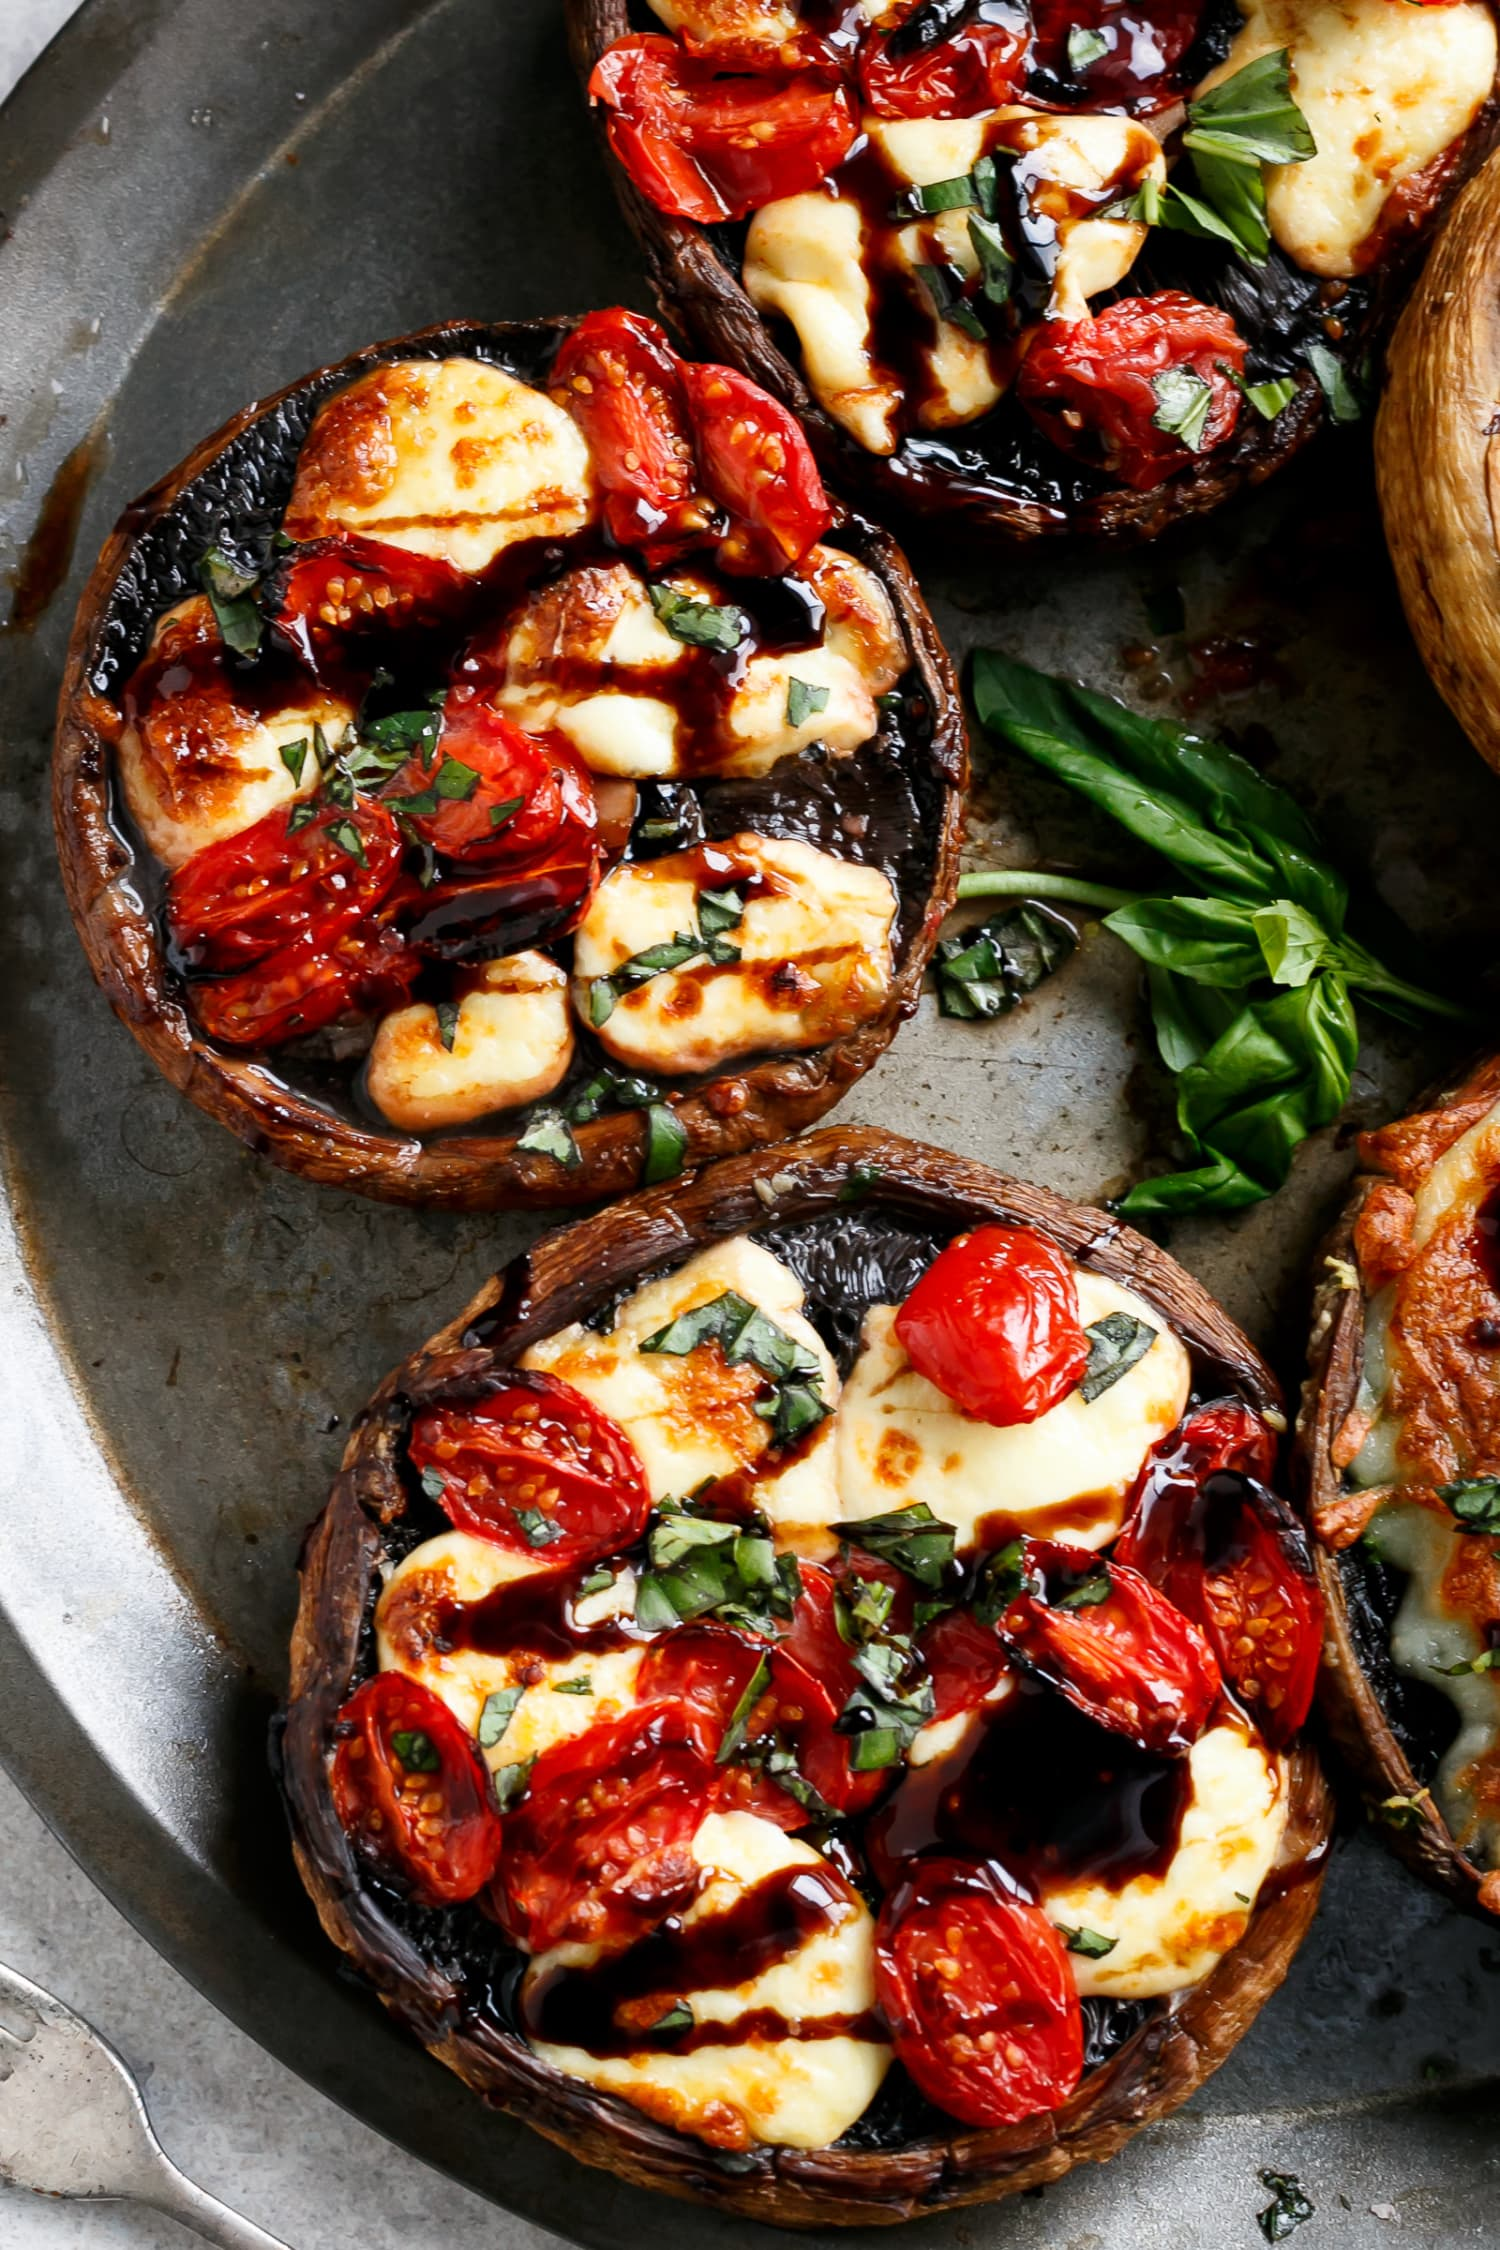 Behold the Melty Goodness of Caprese-Stuffed Mushrooms